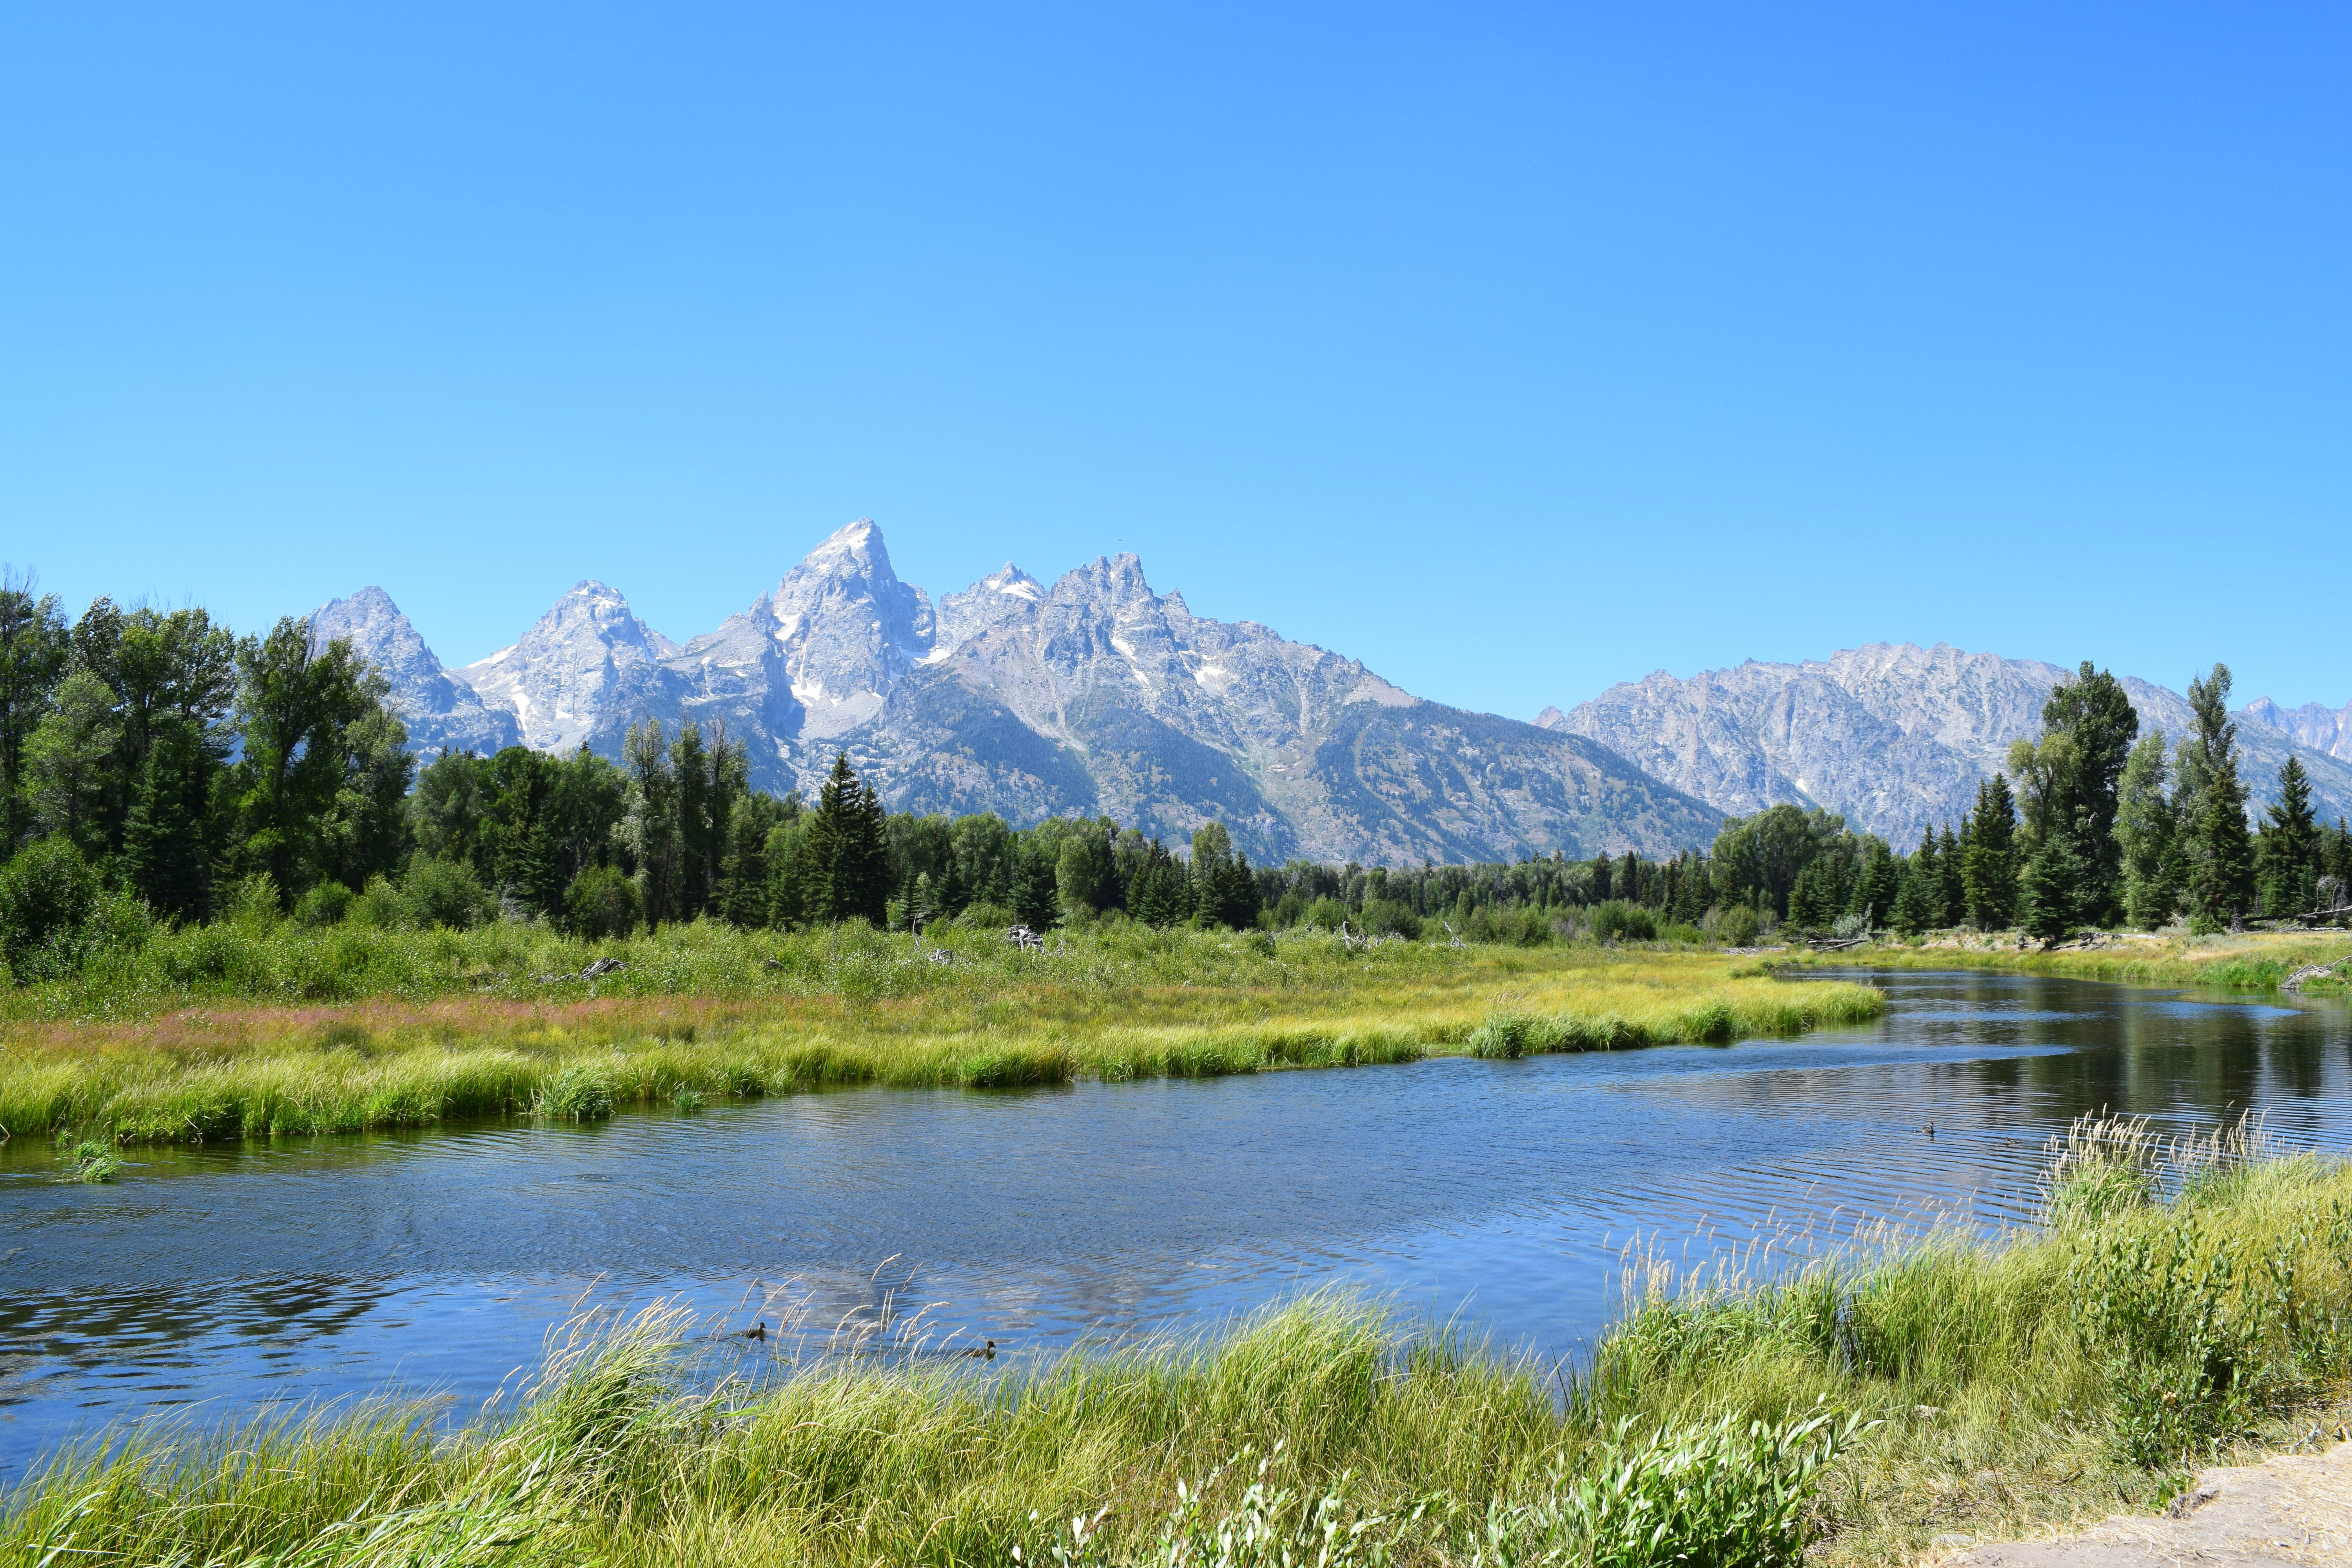 A river flowing in front of a mountain range on a clear sunny day